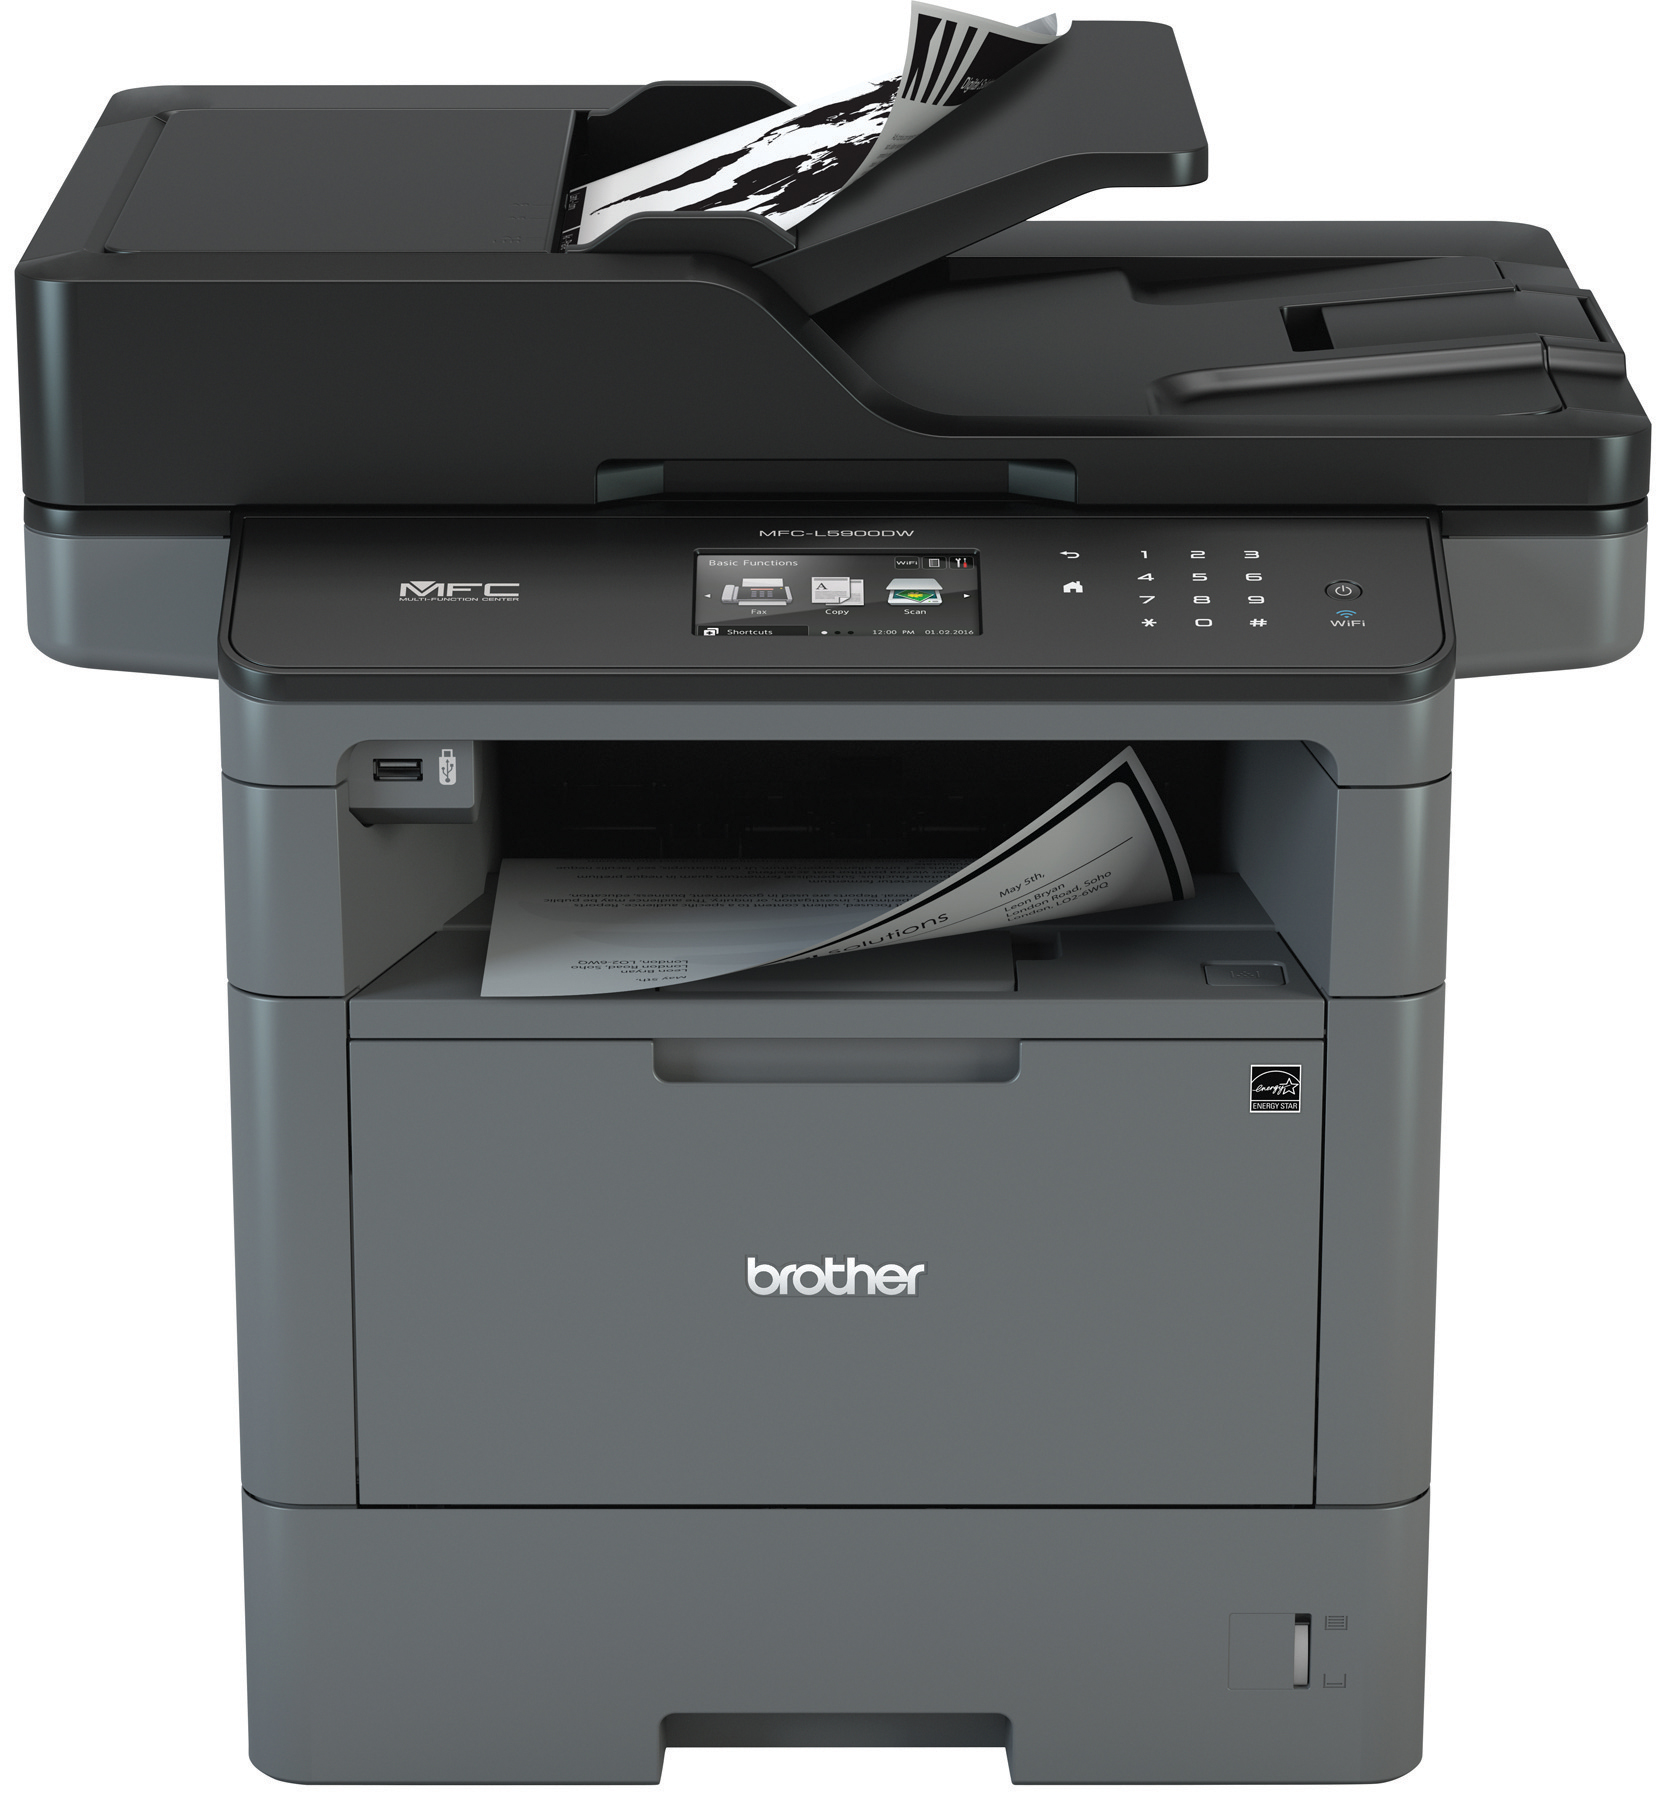 Brother MFC L5900DW Review: High-Quality Print, Copy, Scan